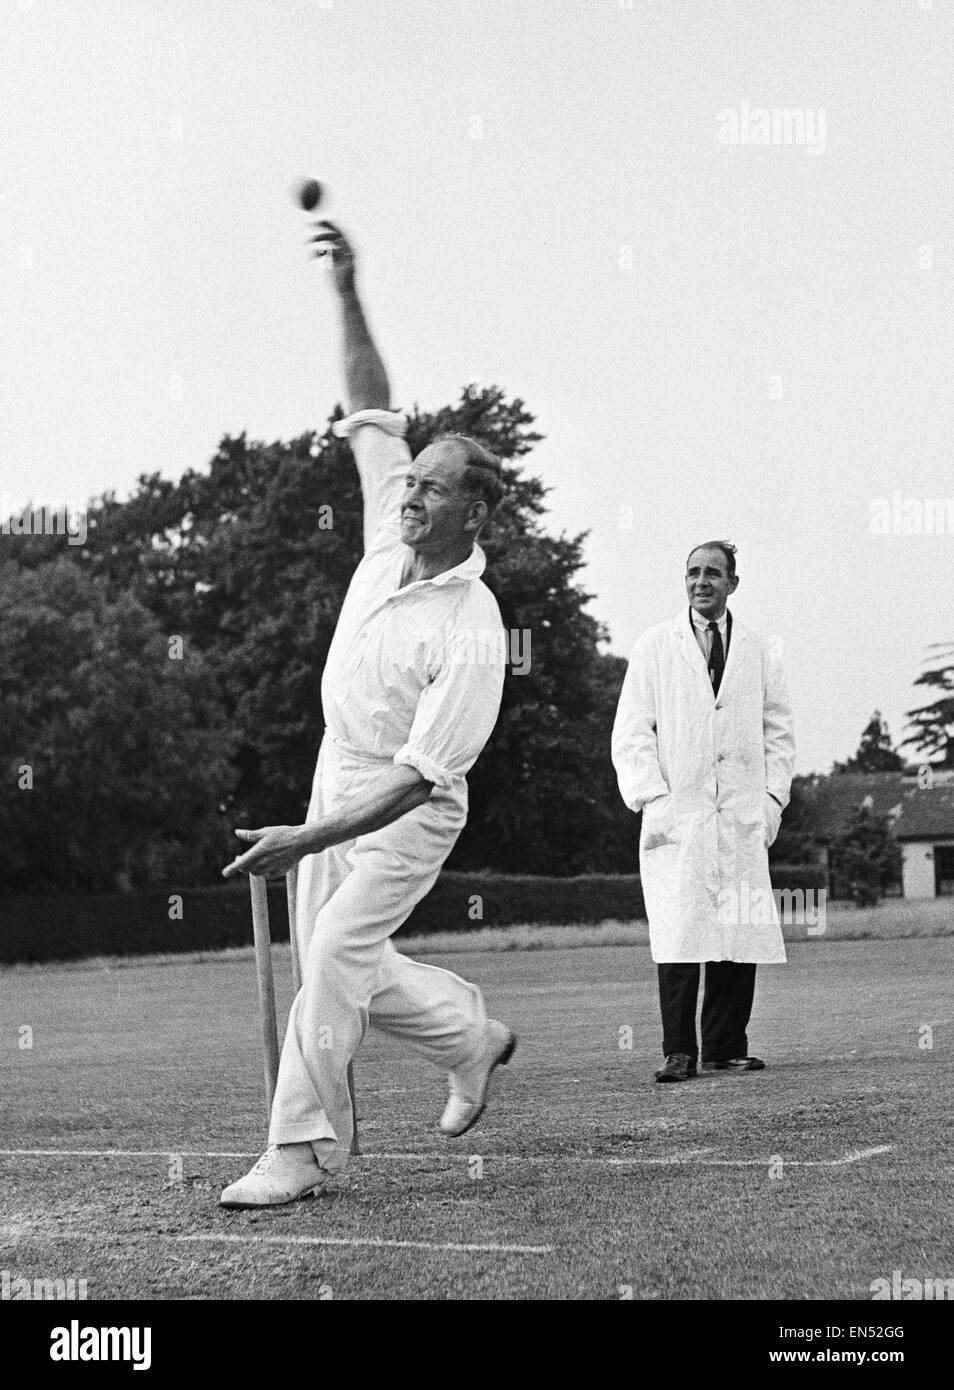 The local cricket team at Meopham one of the oldest teams in Kent seen here in action Circa June 1950 Stock Photo